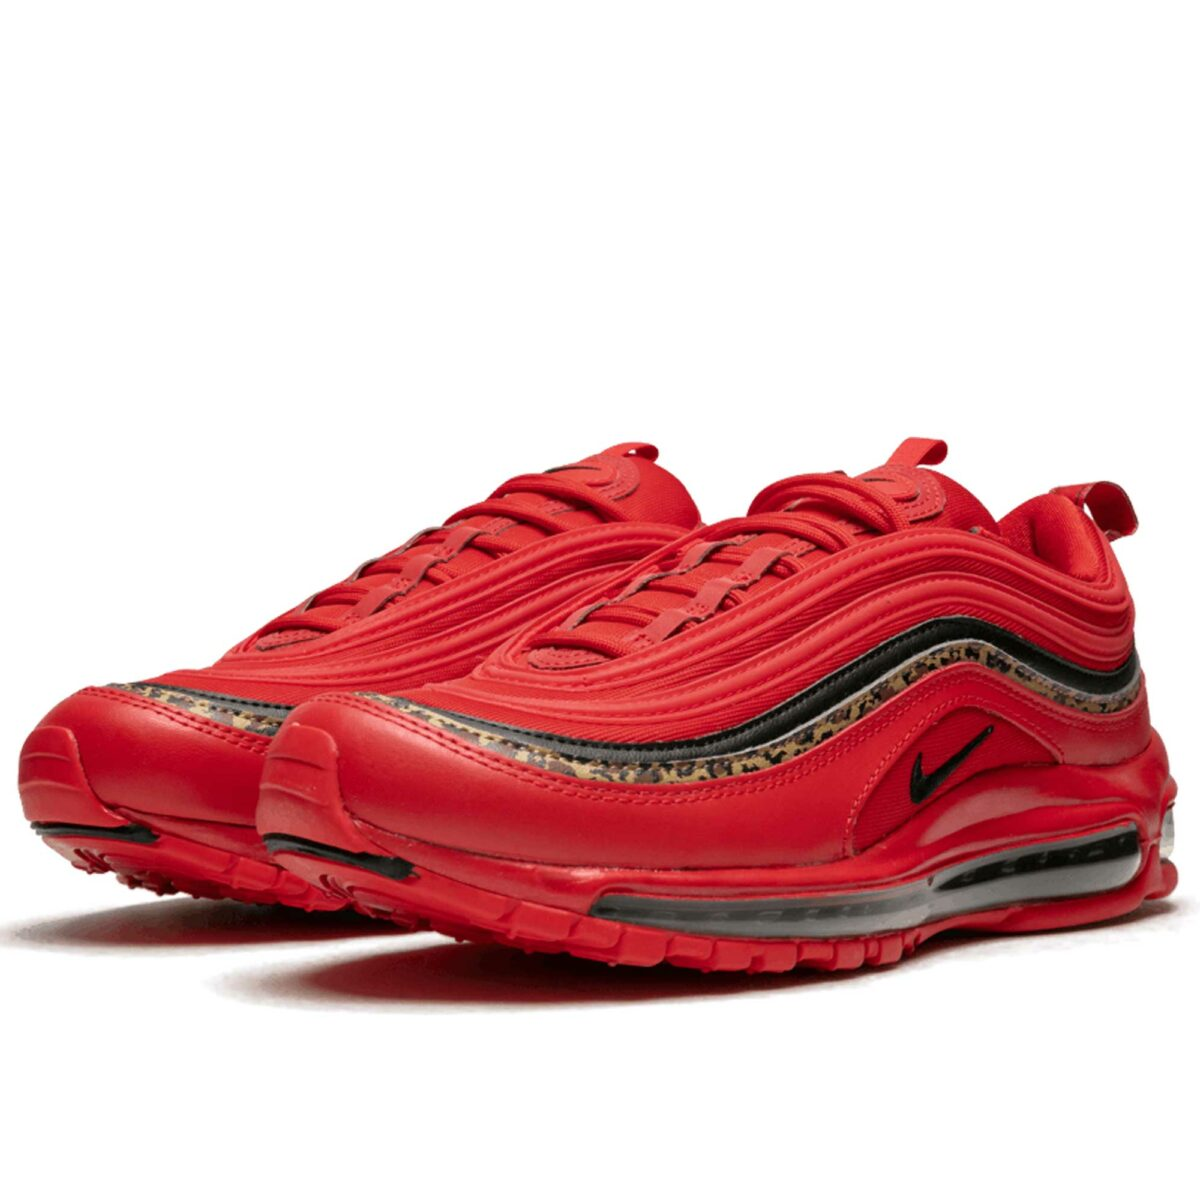 nike air max 97 red black bv6113_600 купить